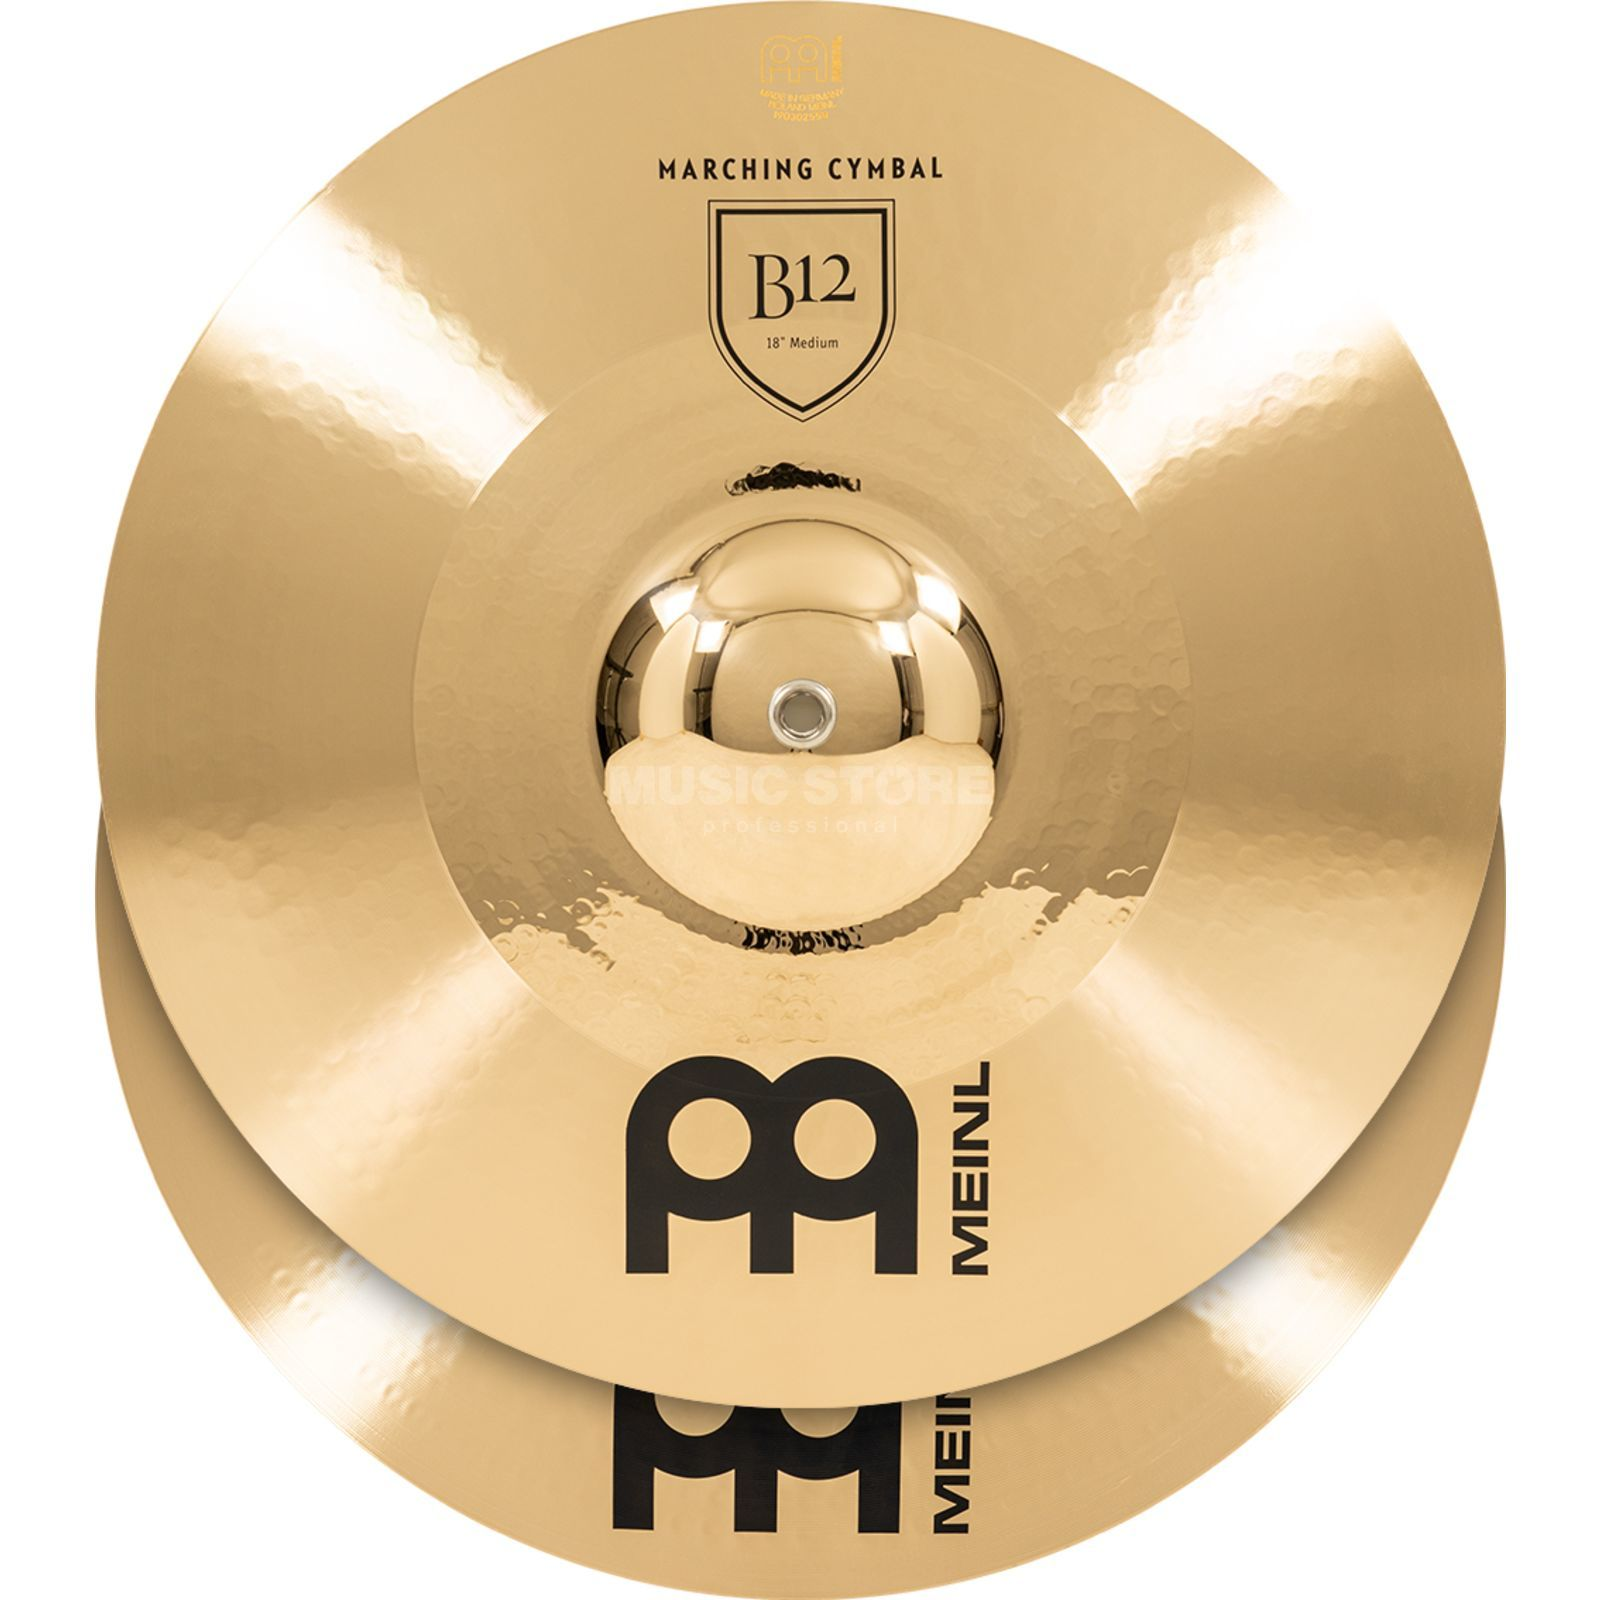 "Meinl B12 Marching Cymbals 18"", Medium, MA-B12-18M Изображение товара"